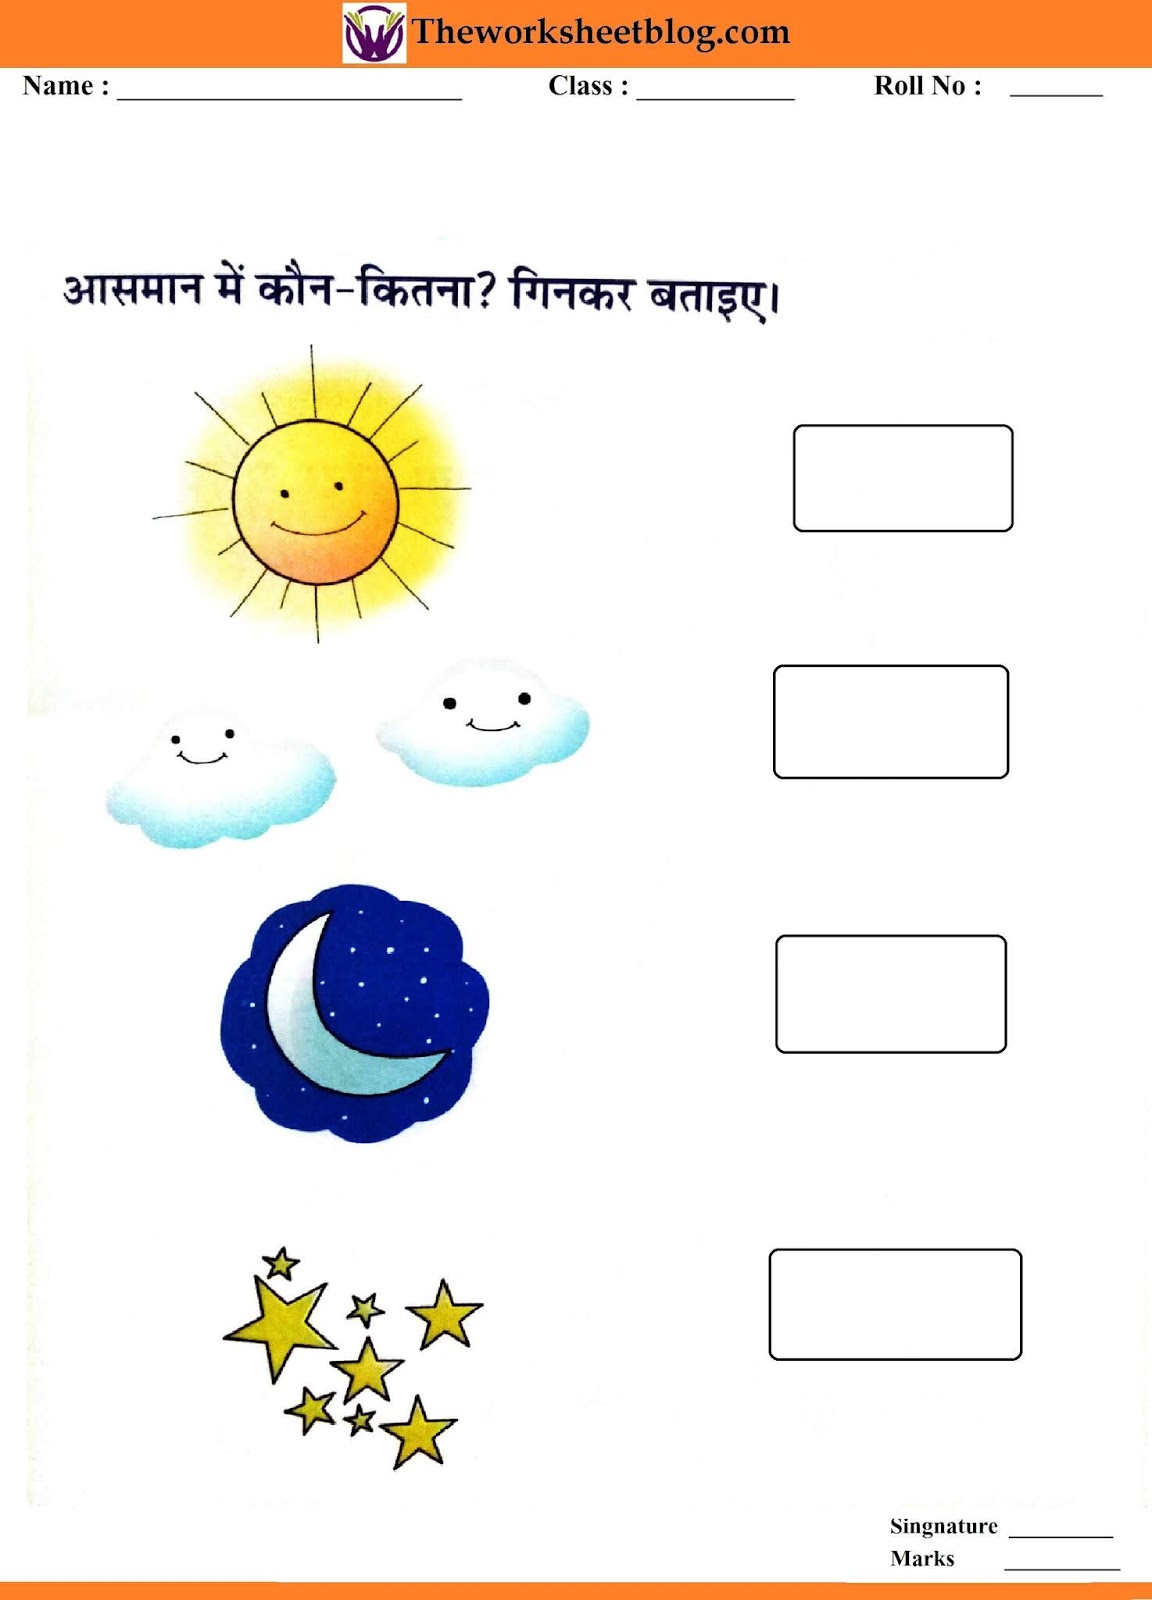 Hindi activity worksheet for beginners with pictures. - Theworksheetsblog [ 1600 x 1152 Pixel ]